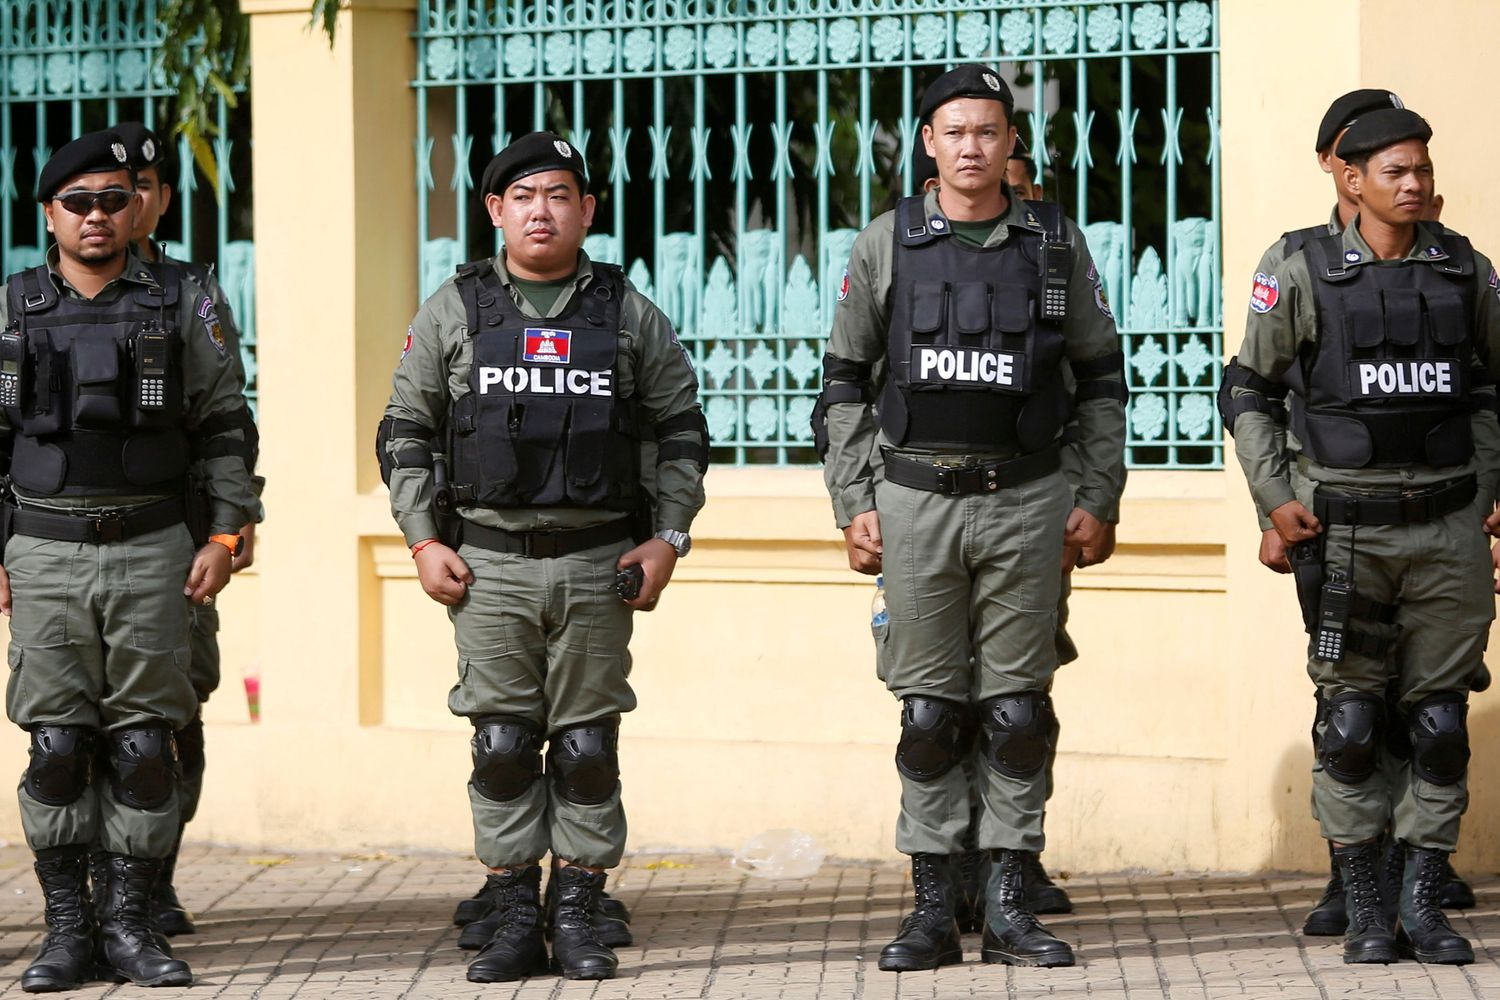 Police officers stand guard near the Supreme Court of Phnom Penh, Cambodia, in 2017. (Reuters photo)